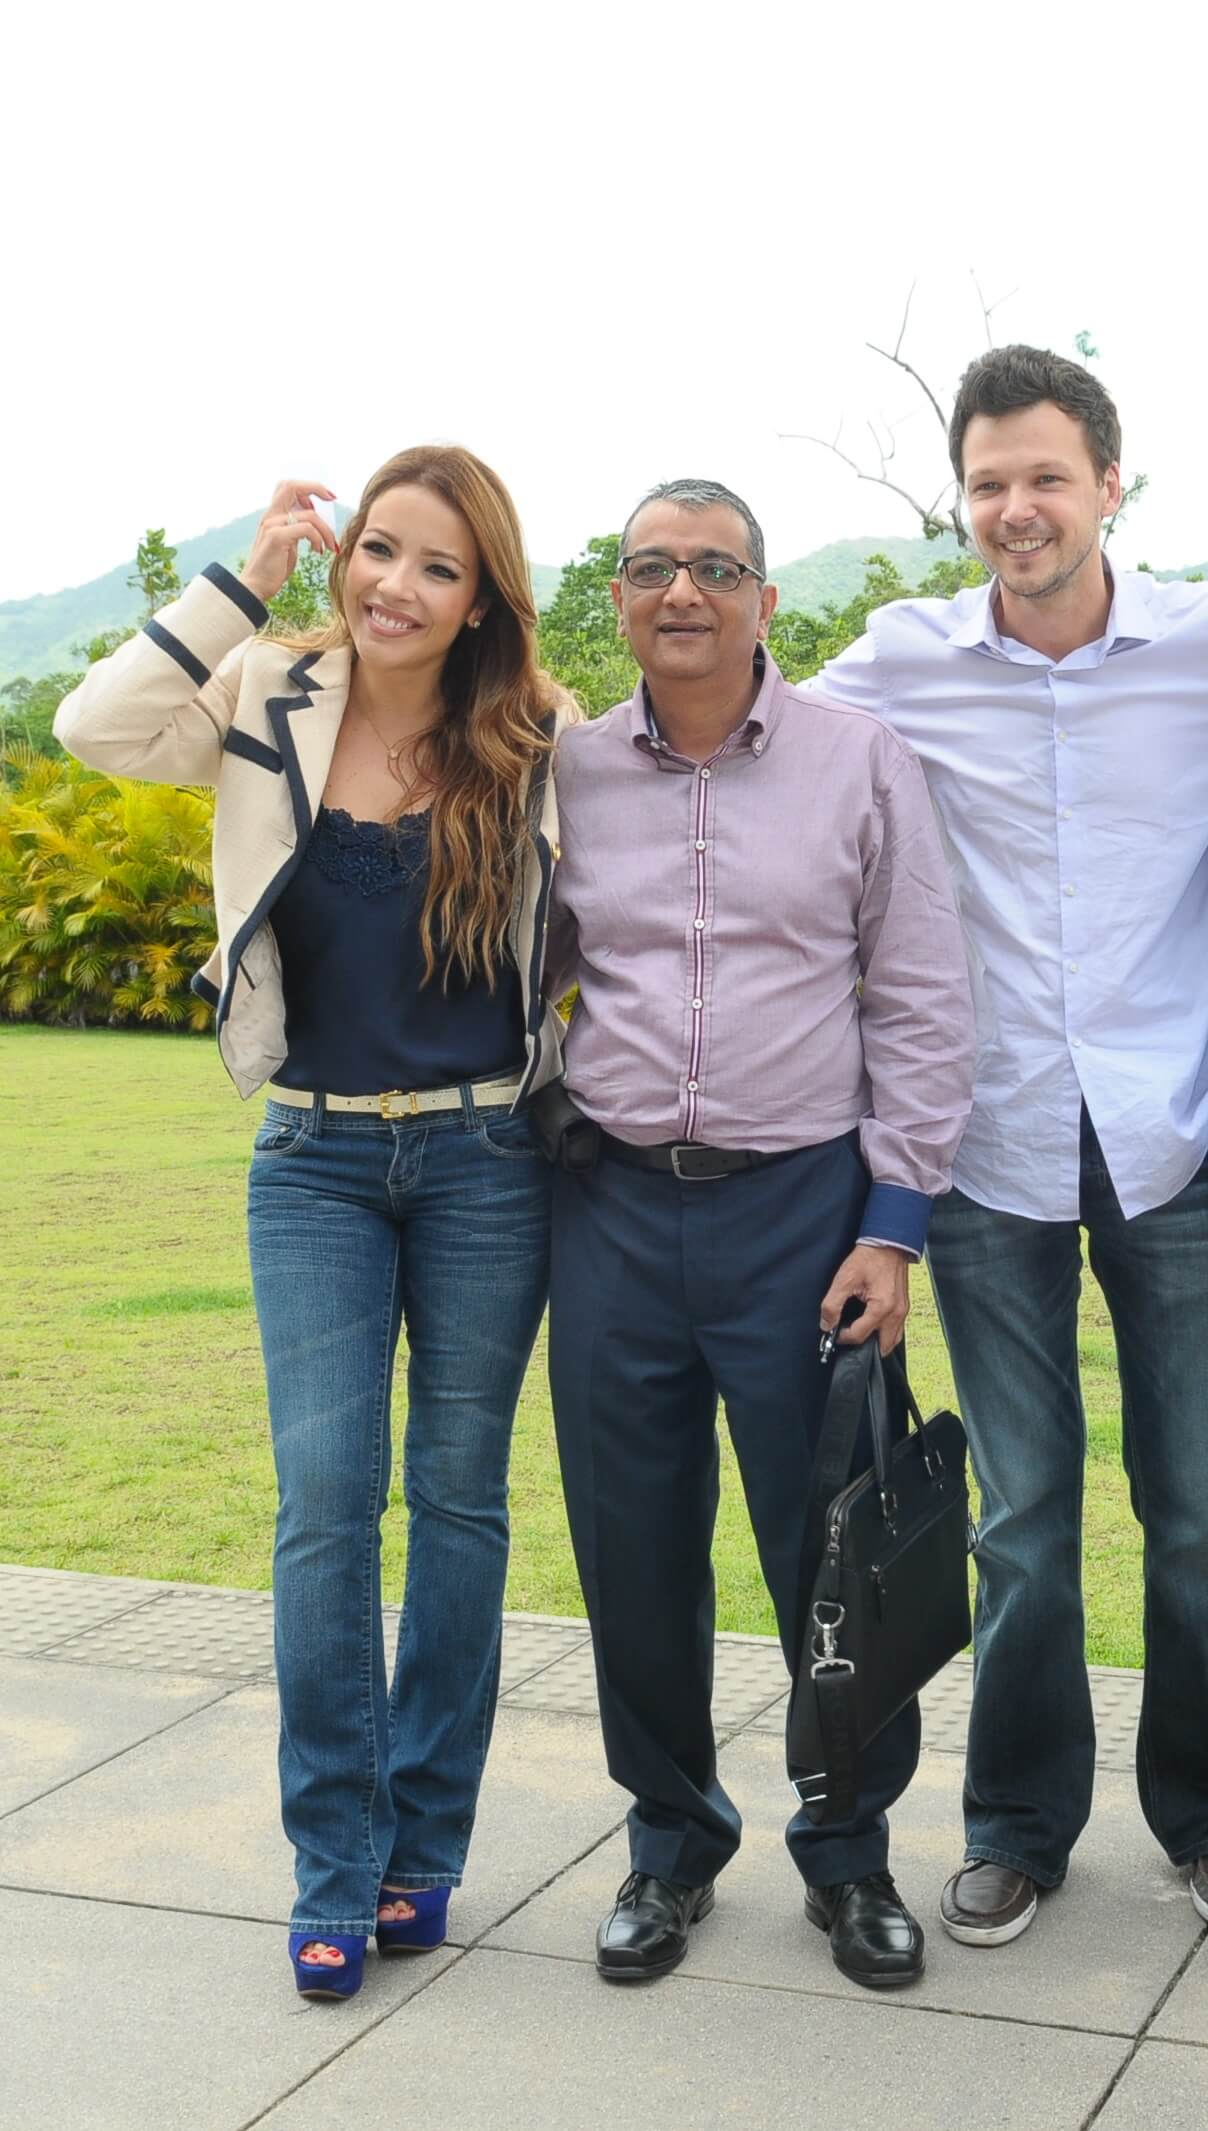 Mr. Dinesh Govindani with Renata Dominguez & Guilherme Berenguer, lead actors of the Brazilian TV show Casamento Blindado